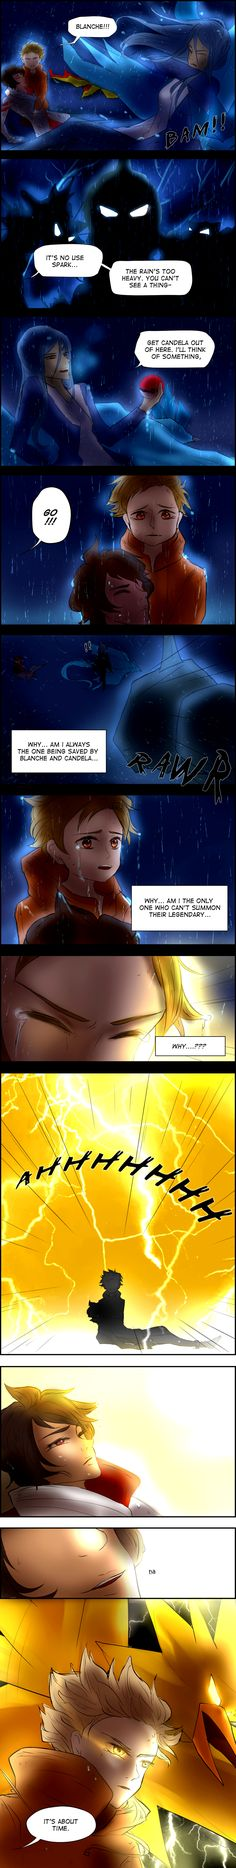 Pokemon Go Comic - Spark Awakens by yuuike on DeviantArt